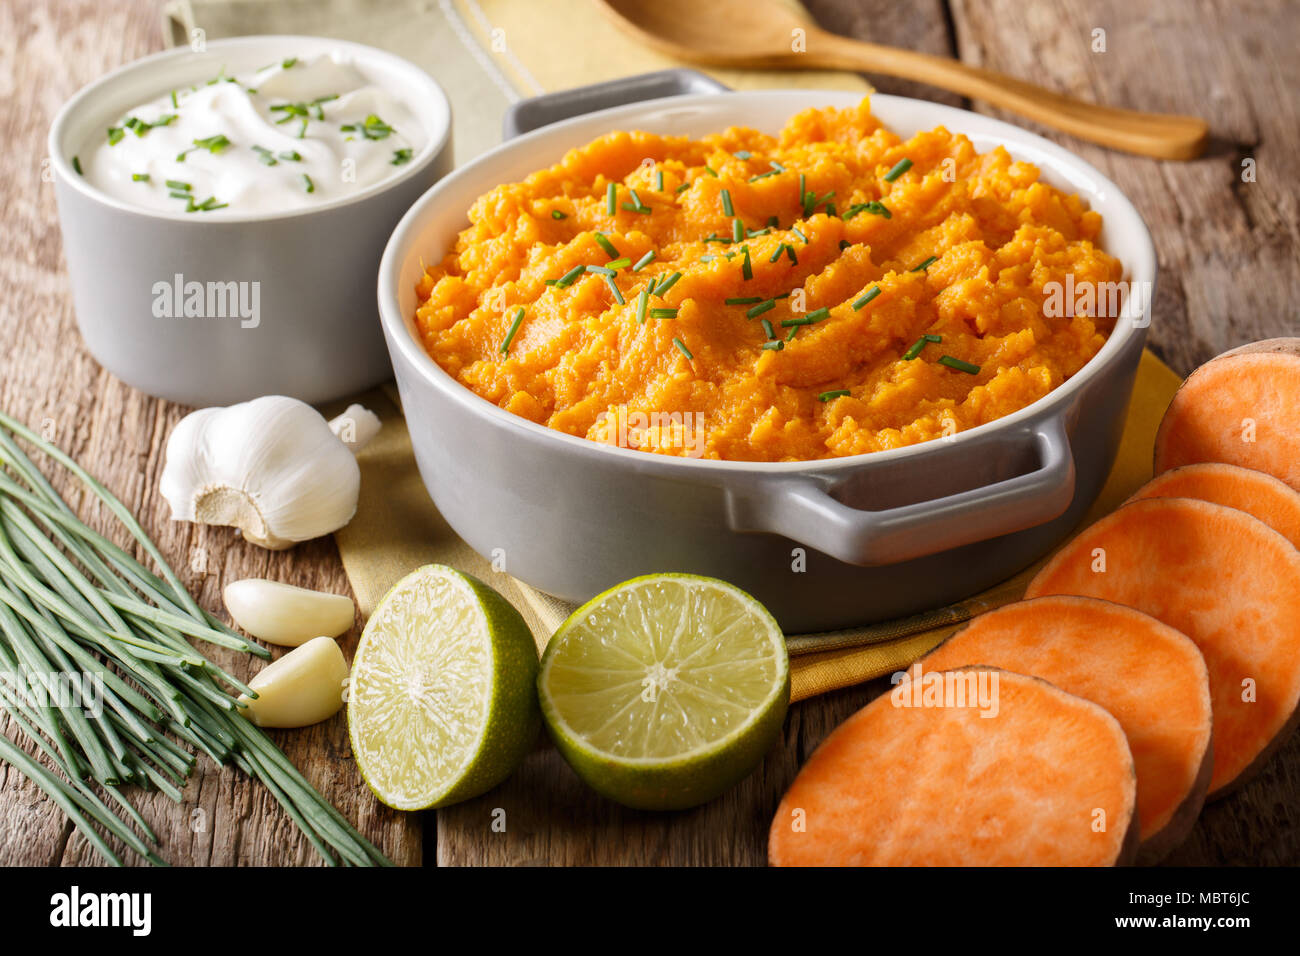 Freshly prepared mashed sweet potatoes with herbs, garlic and lime close up in a pot on the table. horizontal - Stock Image